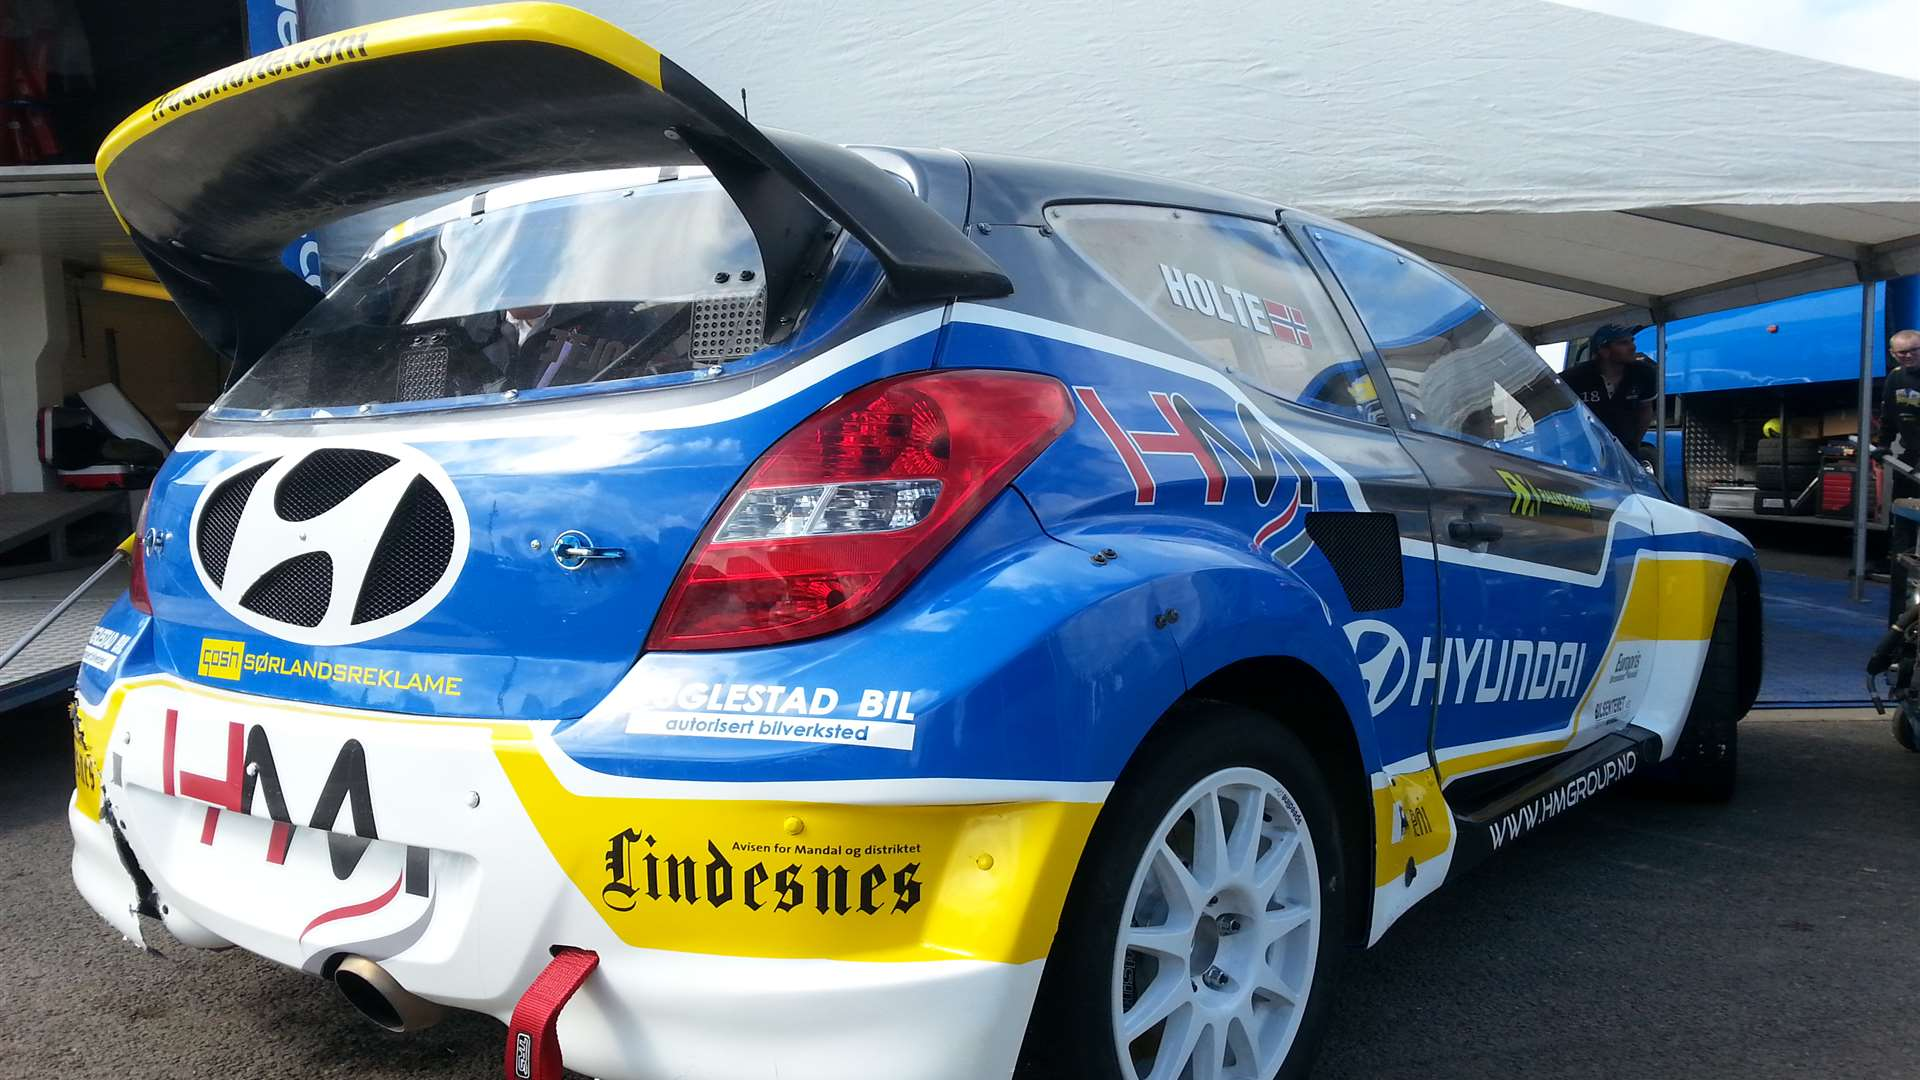 Frode Holte's Hyundai i20 looking nice in the paddock